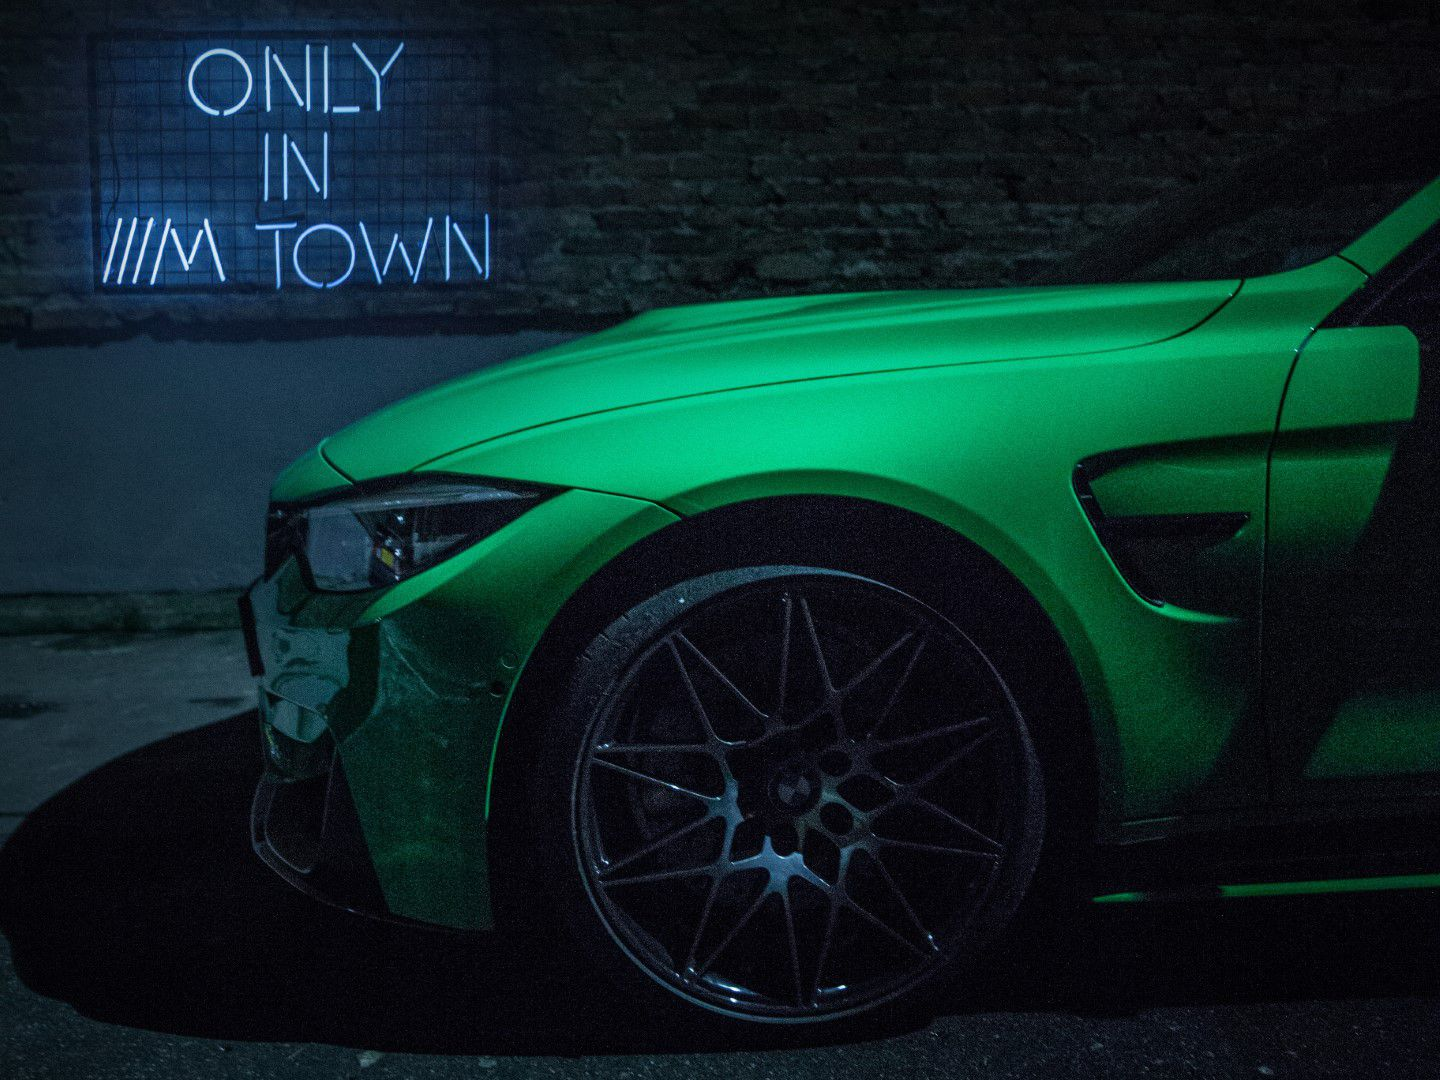 ///M TOWN | BMW M TOWN jedna noc | TOO MUCH is just right | CarTec Group